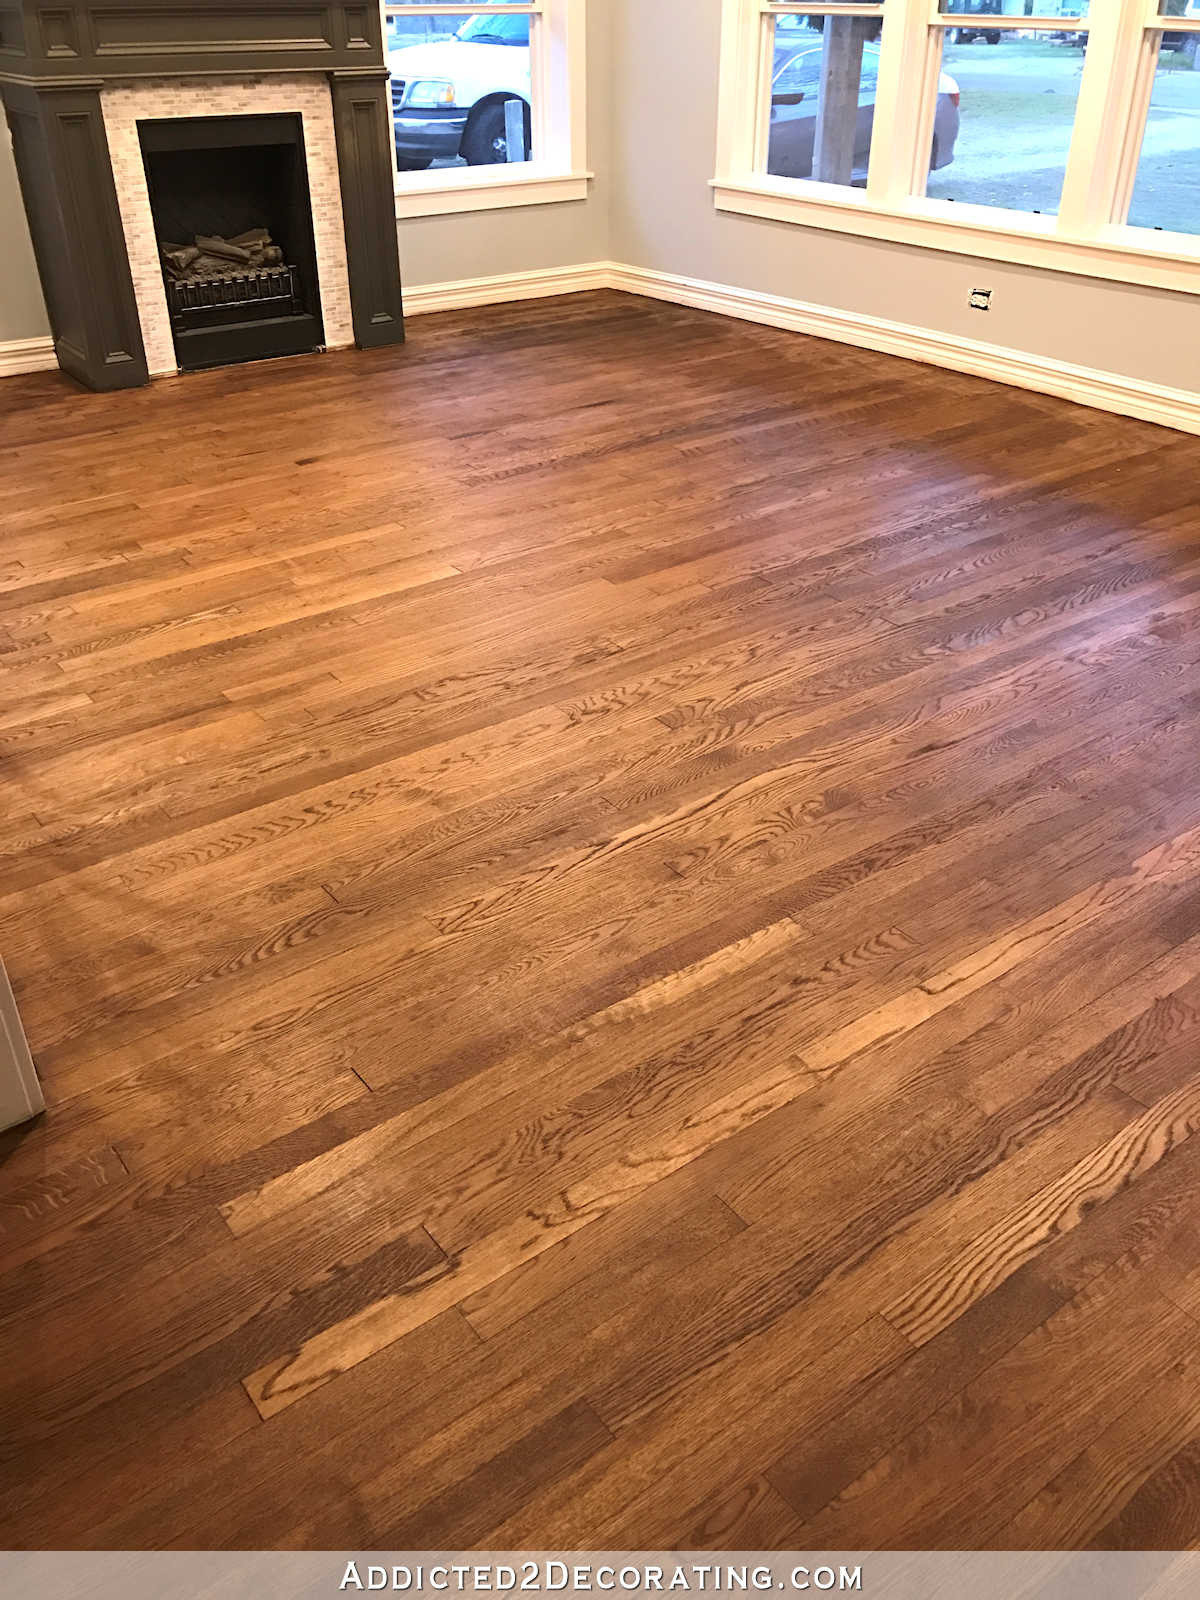 buffing hardwood floors diy of adventures in staining my red oak hardwood floors products process for staining red oak hardwood floors 8a living room and entryway